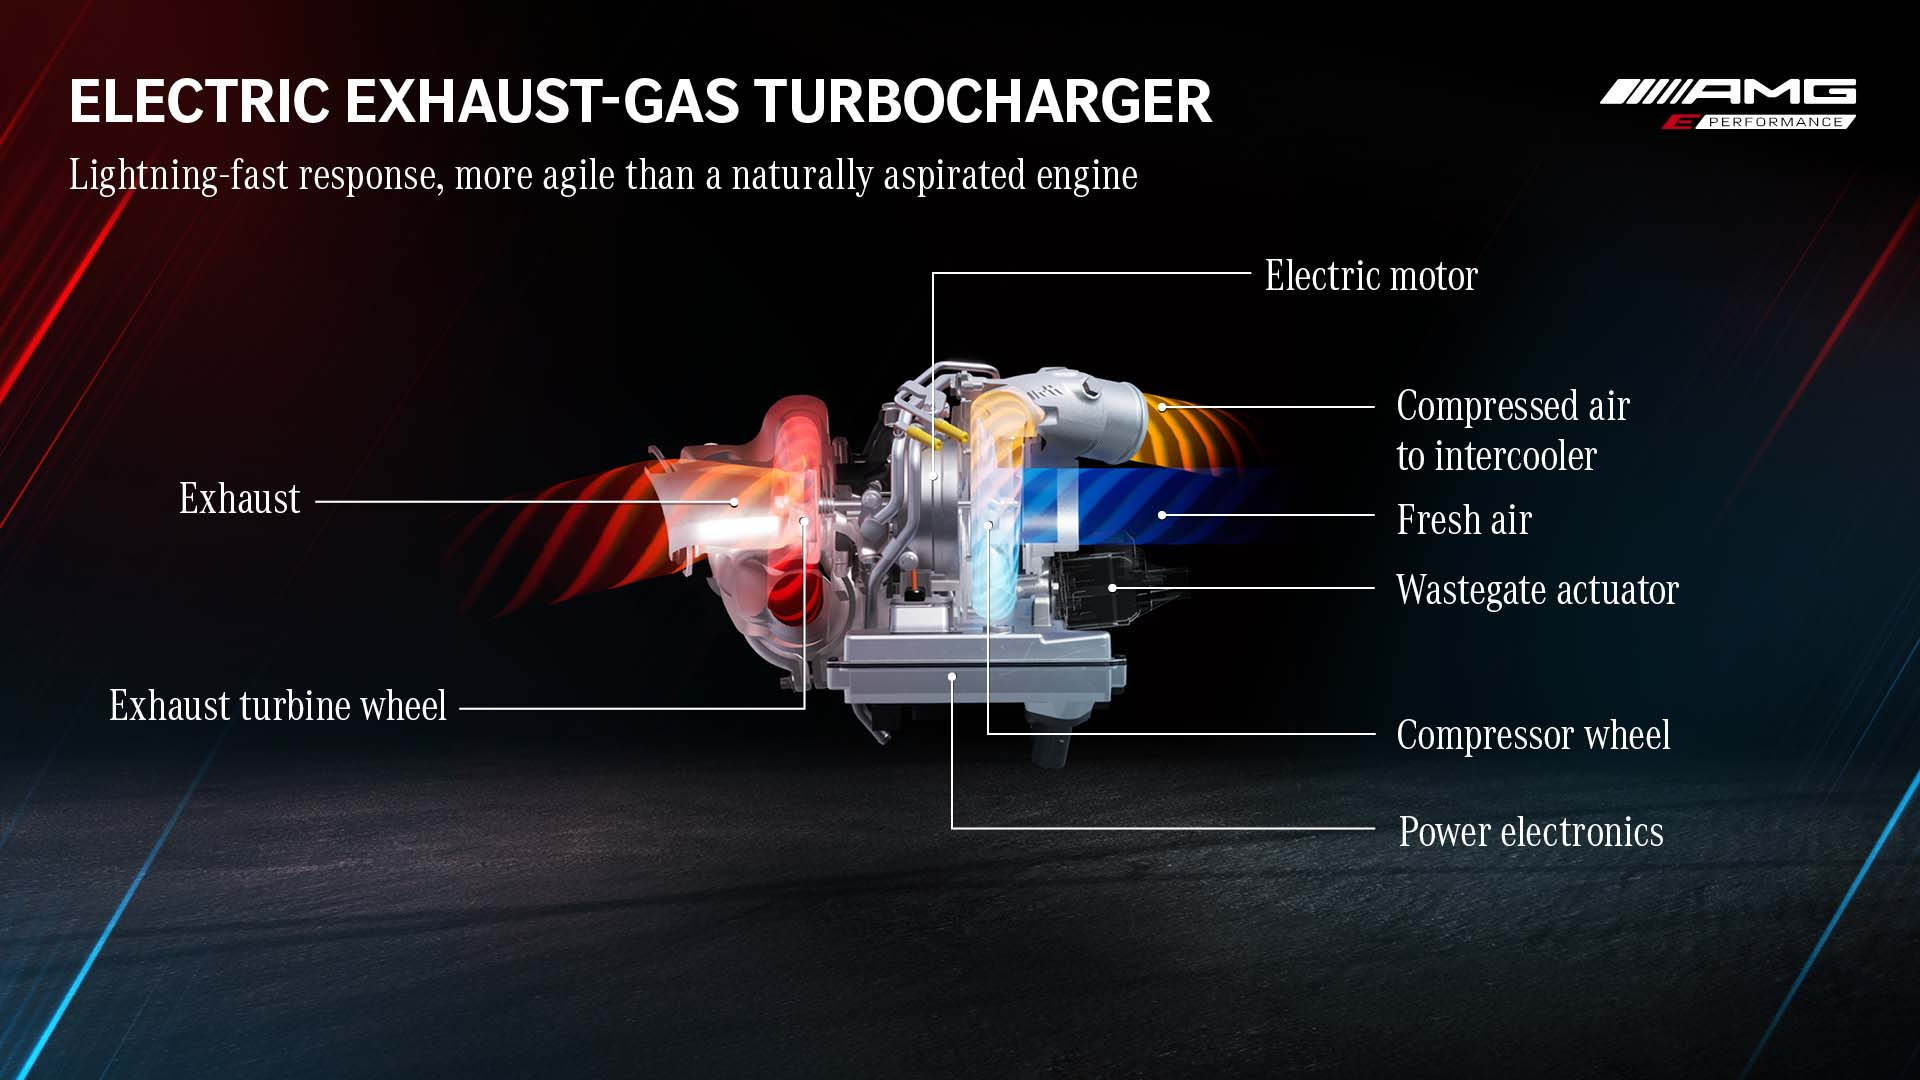 Mercedes-AMG E Performance electric exhaust-gas turbocharger